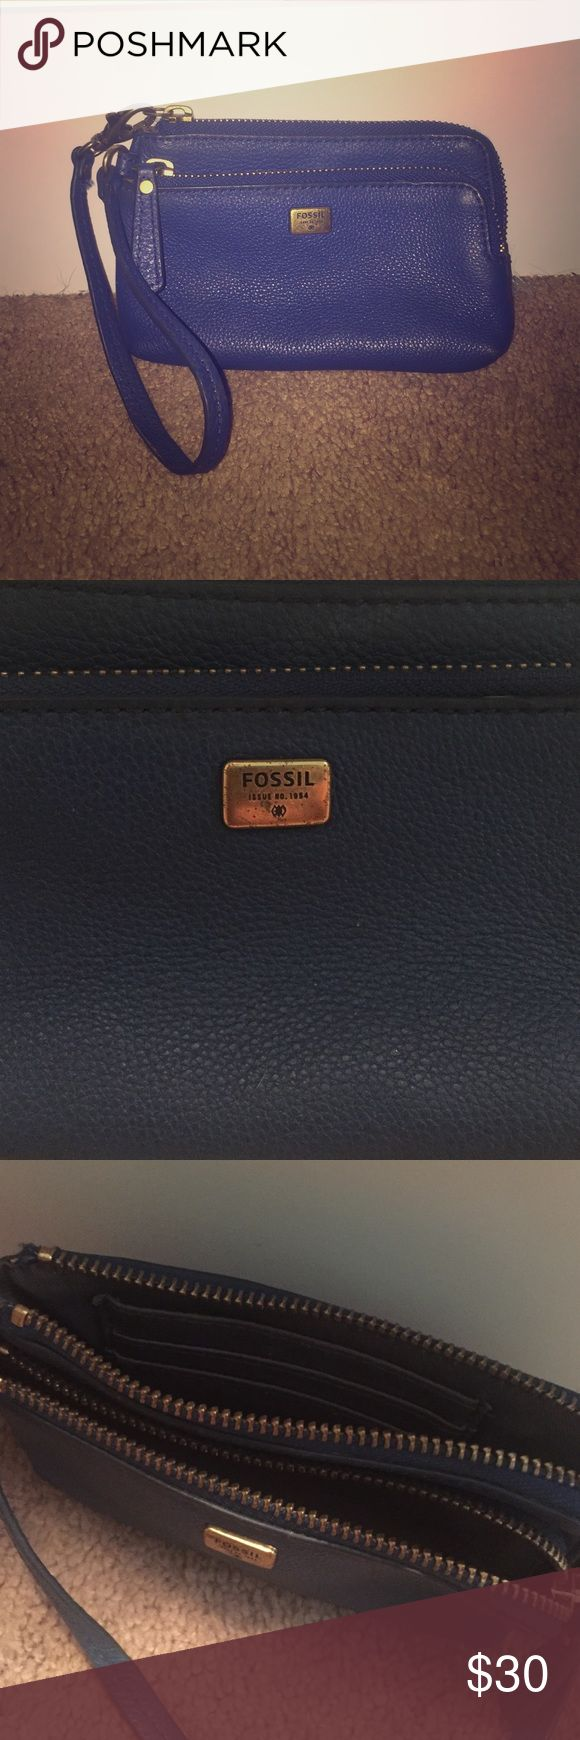 Fossil Wallet Blue Fossil wristlet wallet, great for the fall months! Has been used but only for a month or two & is still is great condition! Fossil Bags Wallets